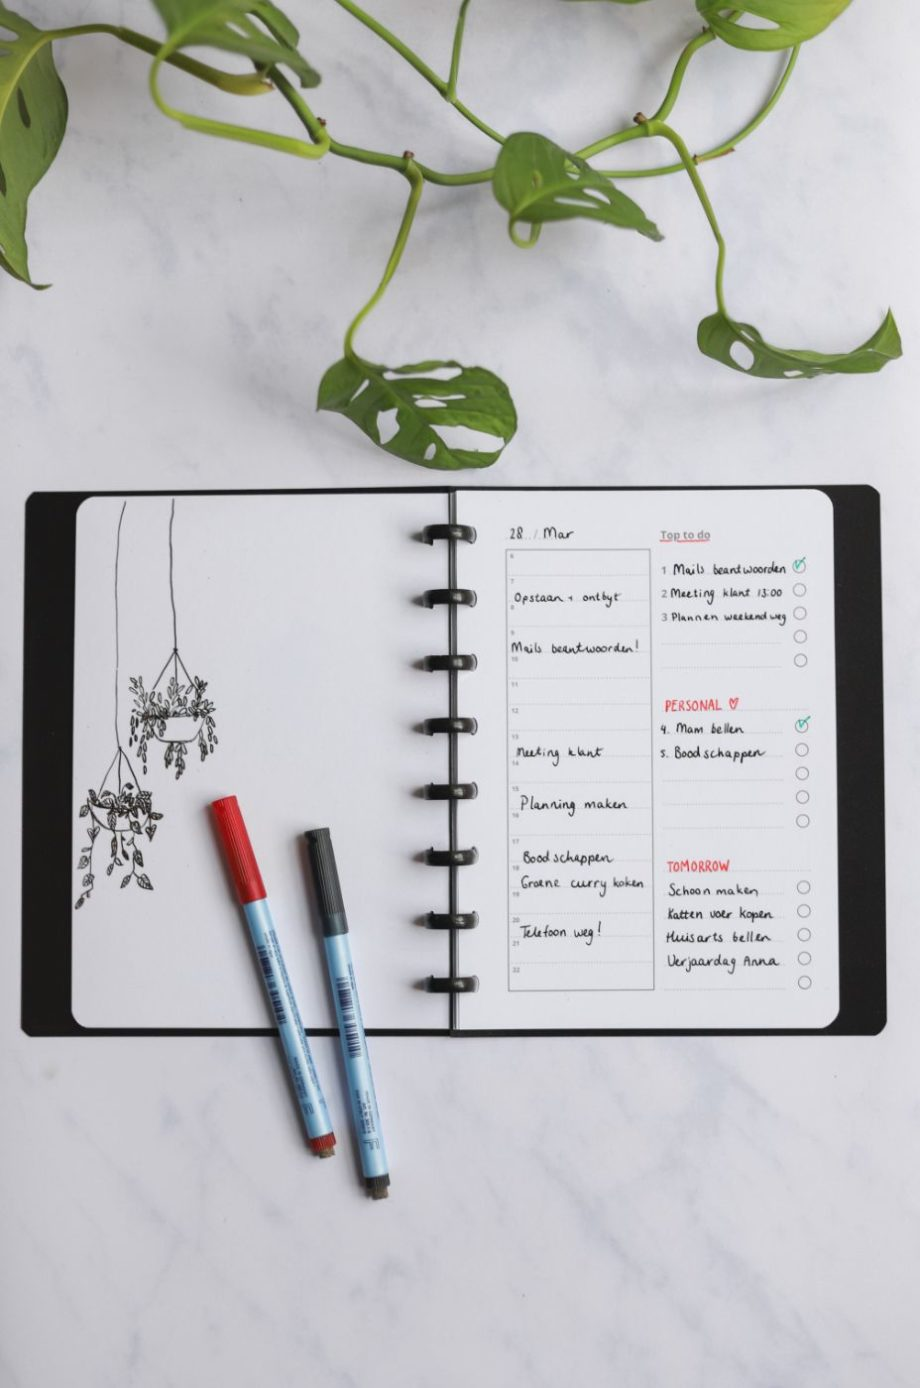 Asoki Planner with erasable whiteboard daily planner page